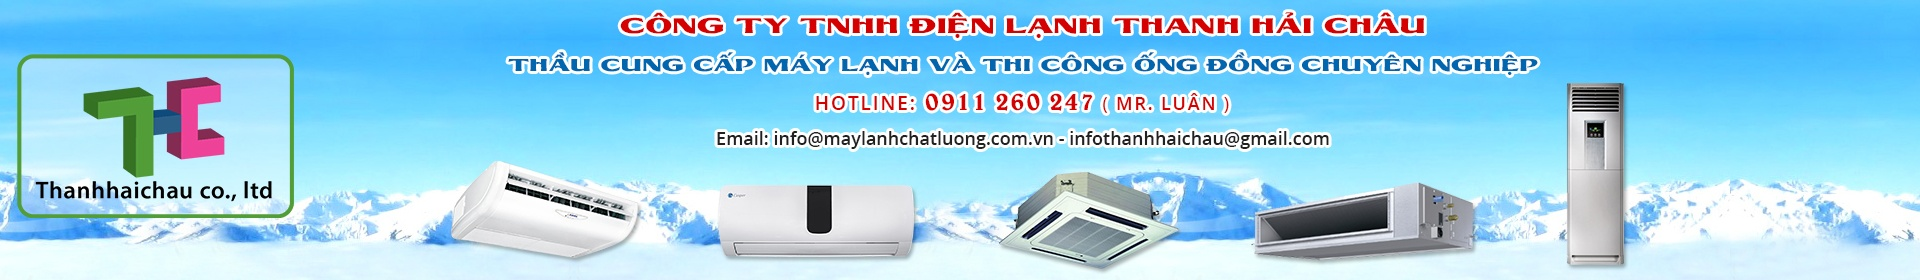 CÔNG TY TNHH ĐIỆN LẠNH  THANH HẢI CHÂU